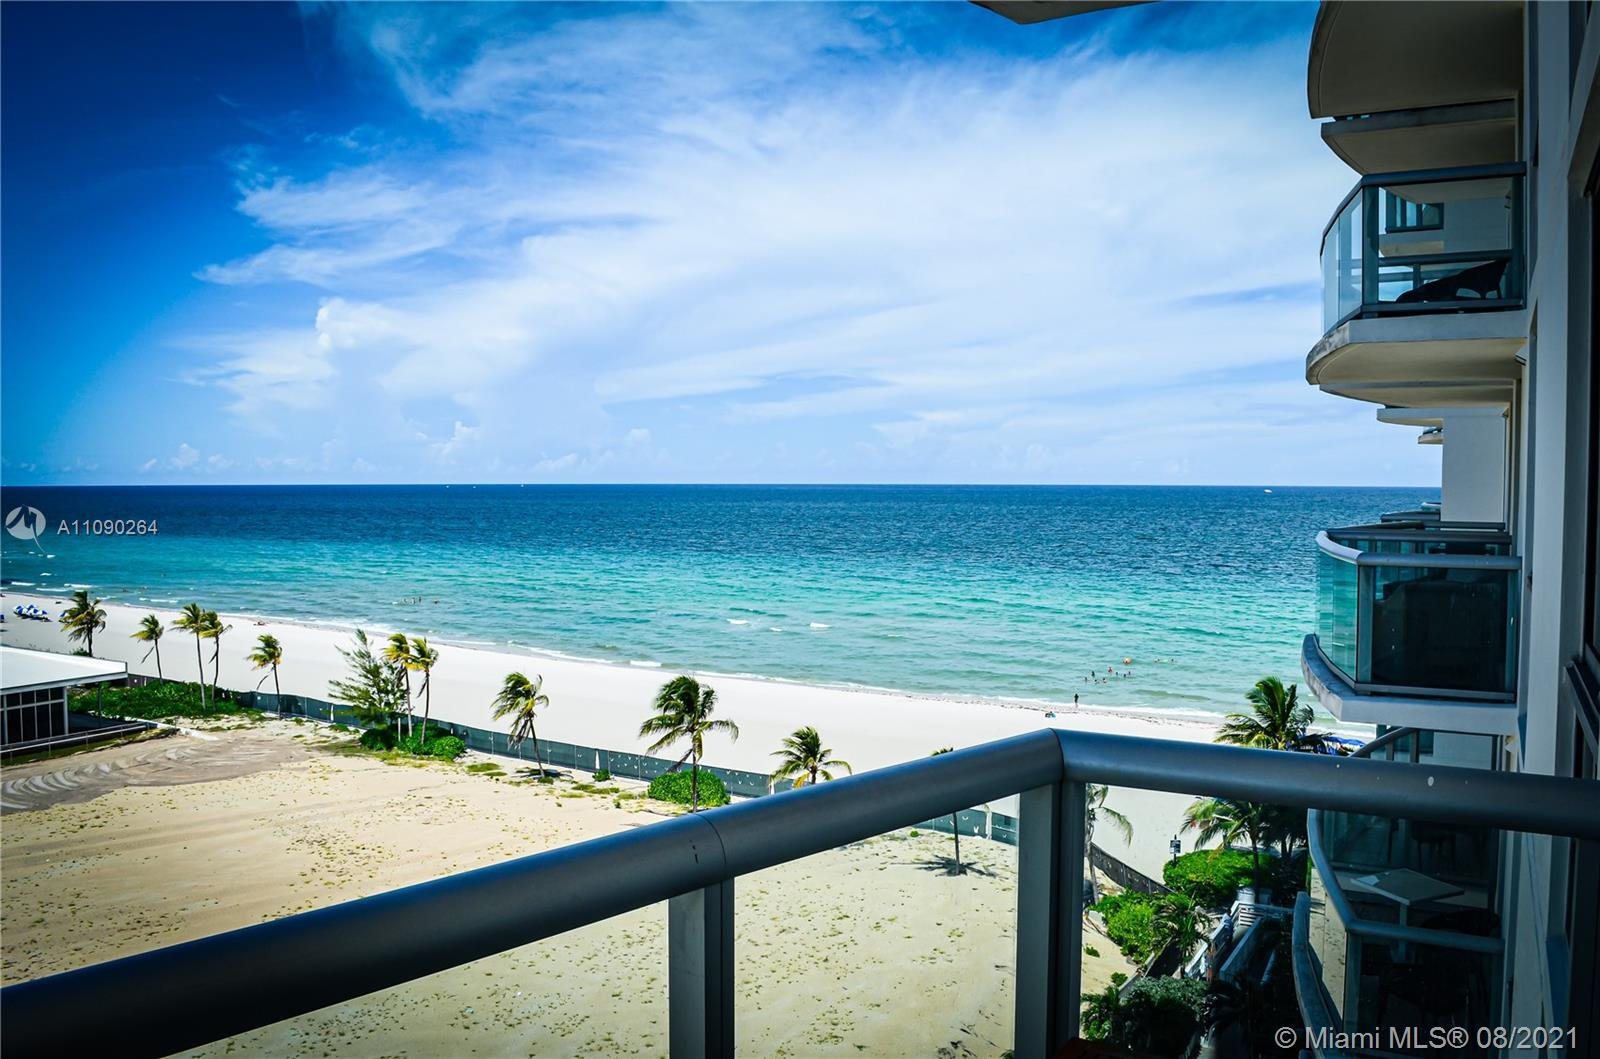 Excellent oceanfront second home, OR business/investment opportunity @ MARENAS Beach Resort w/ full